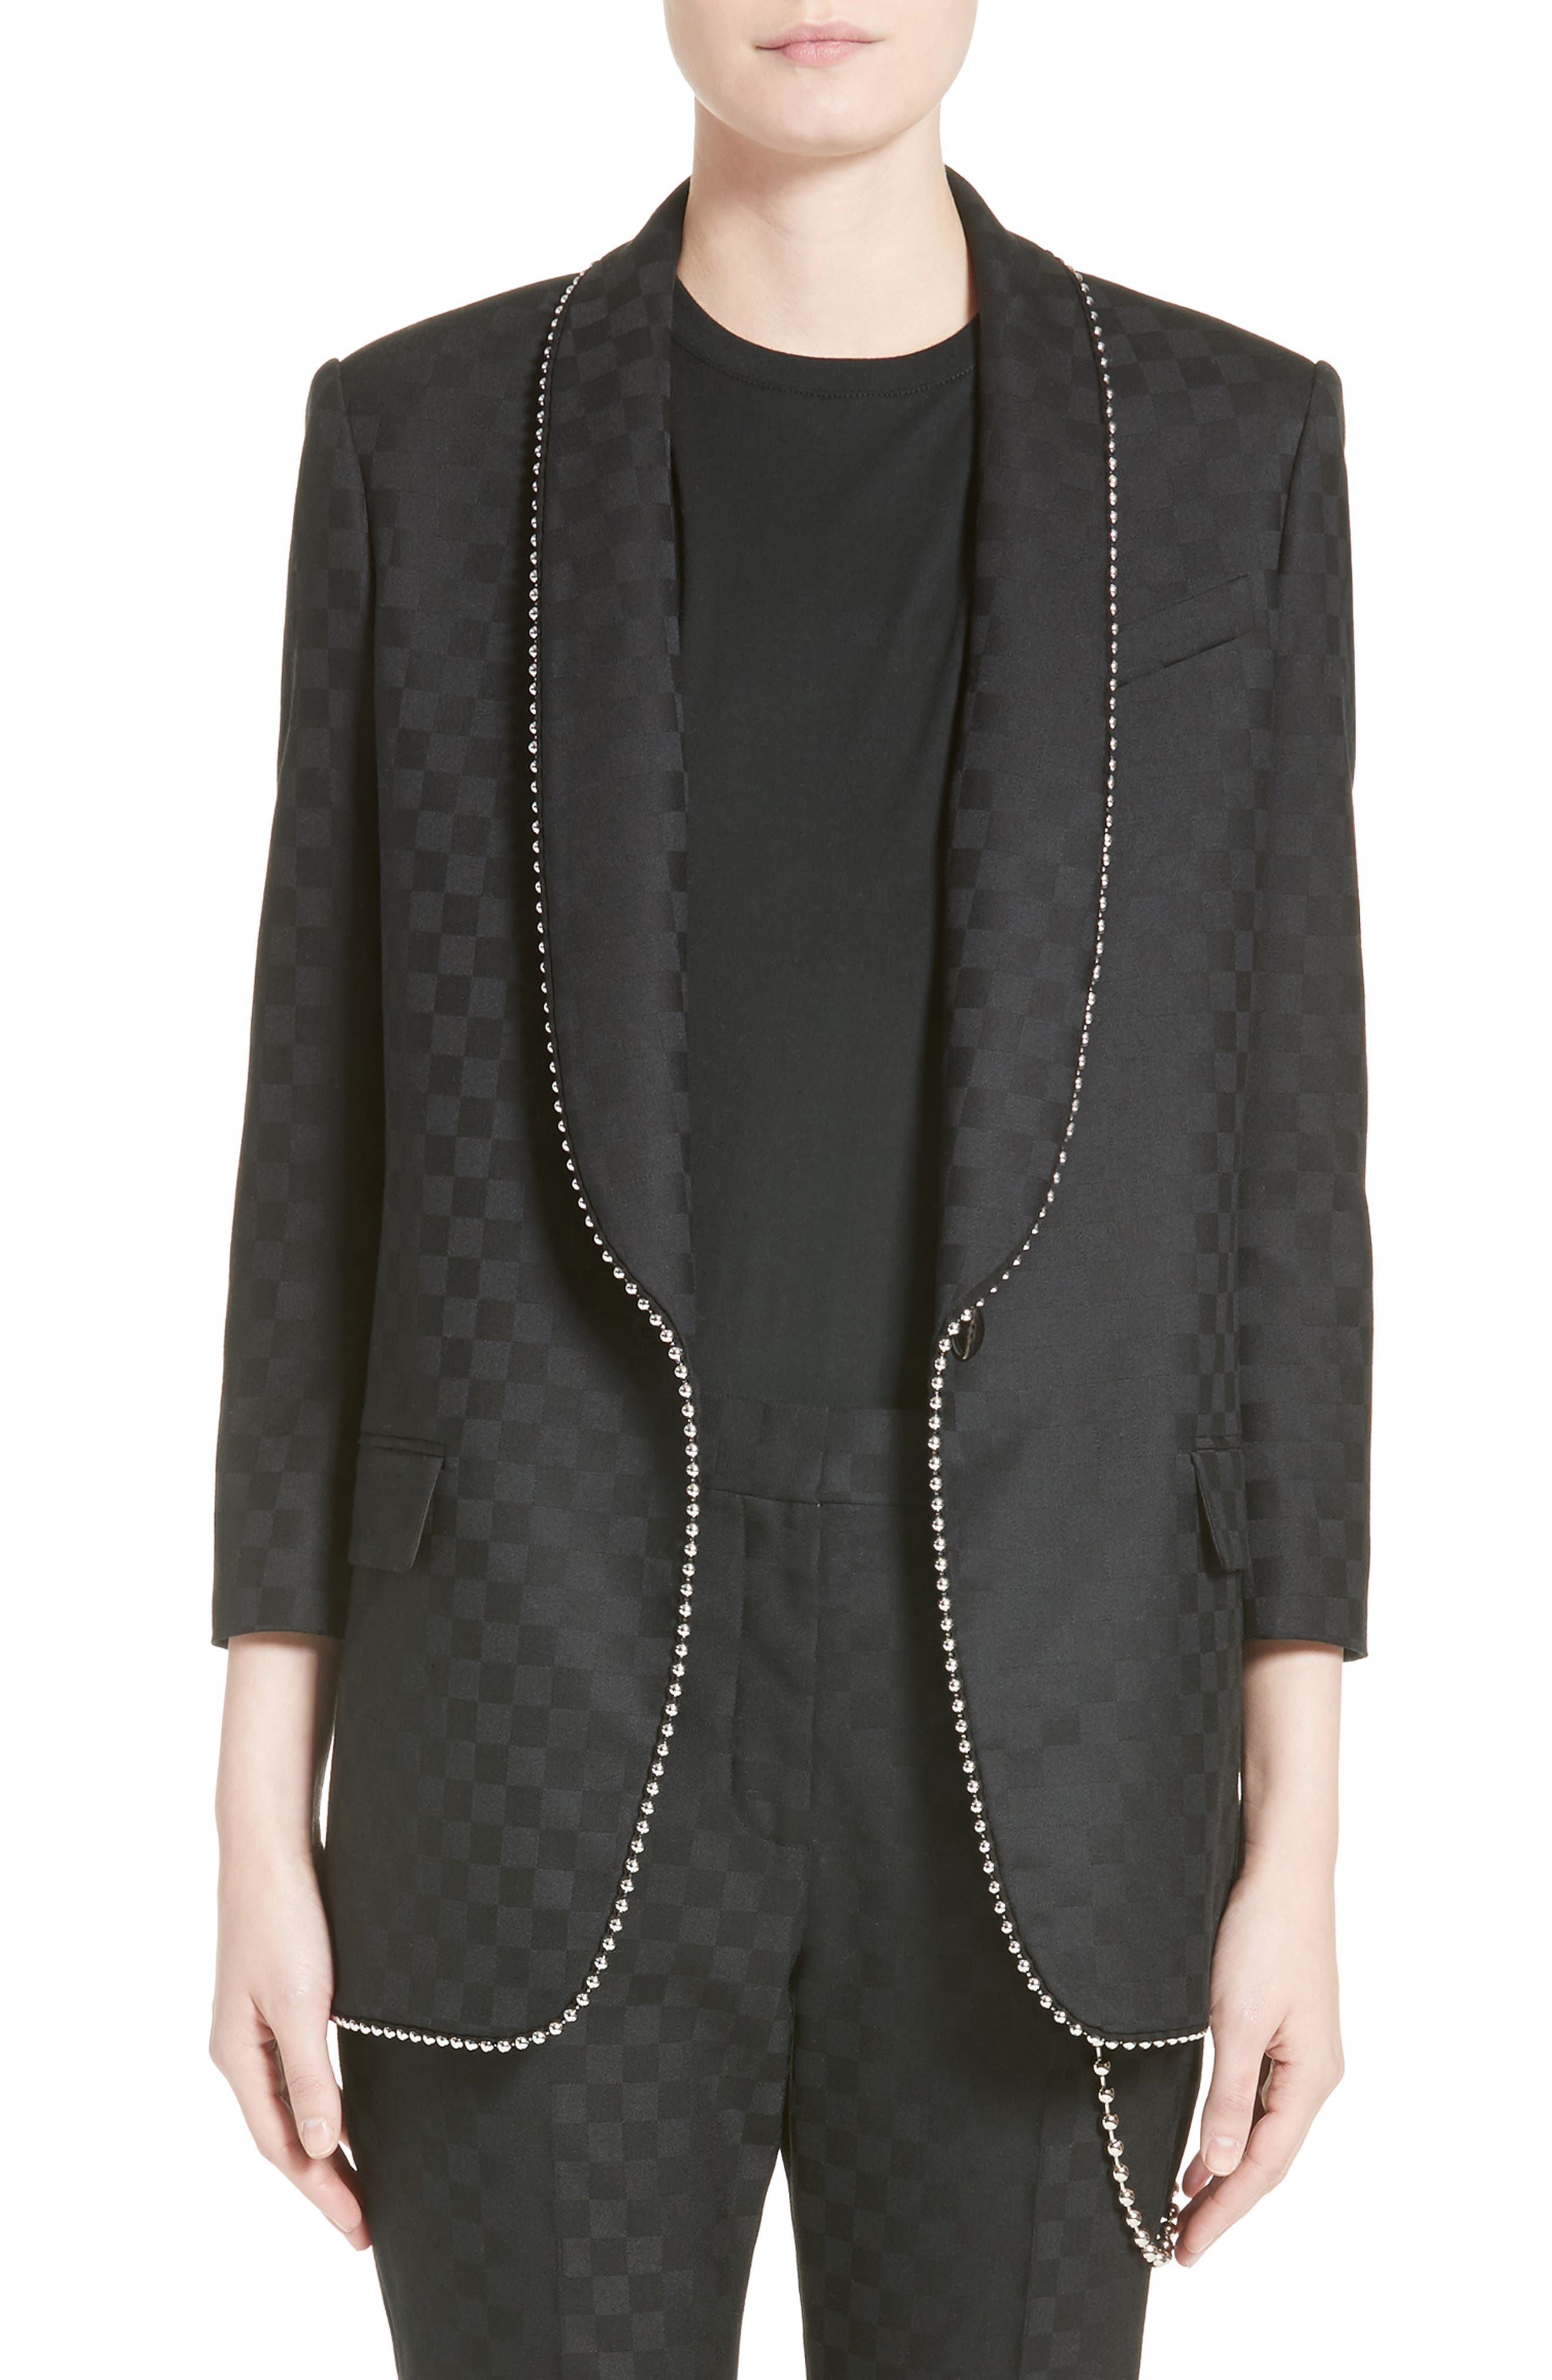 Alternate Image 1 Selected - Alexander Wang Chain Trim Checkerboard Wool Blazer